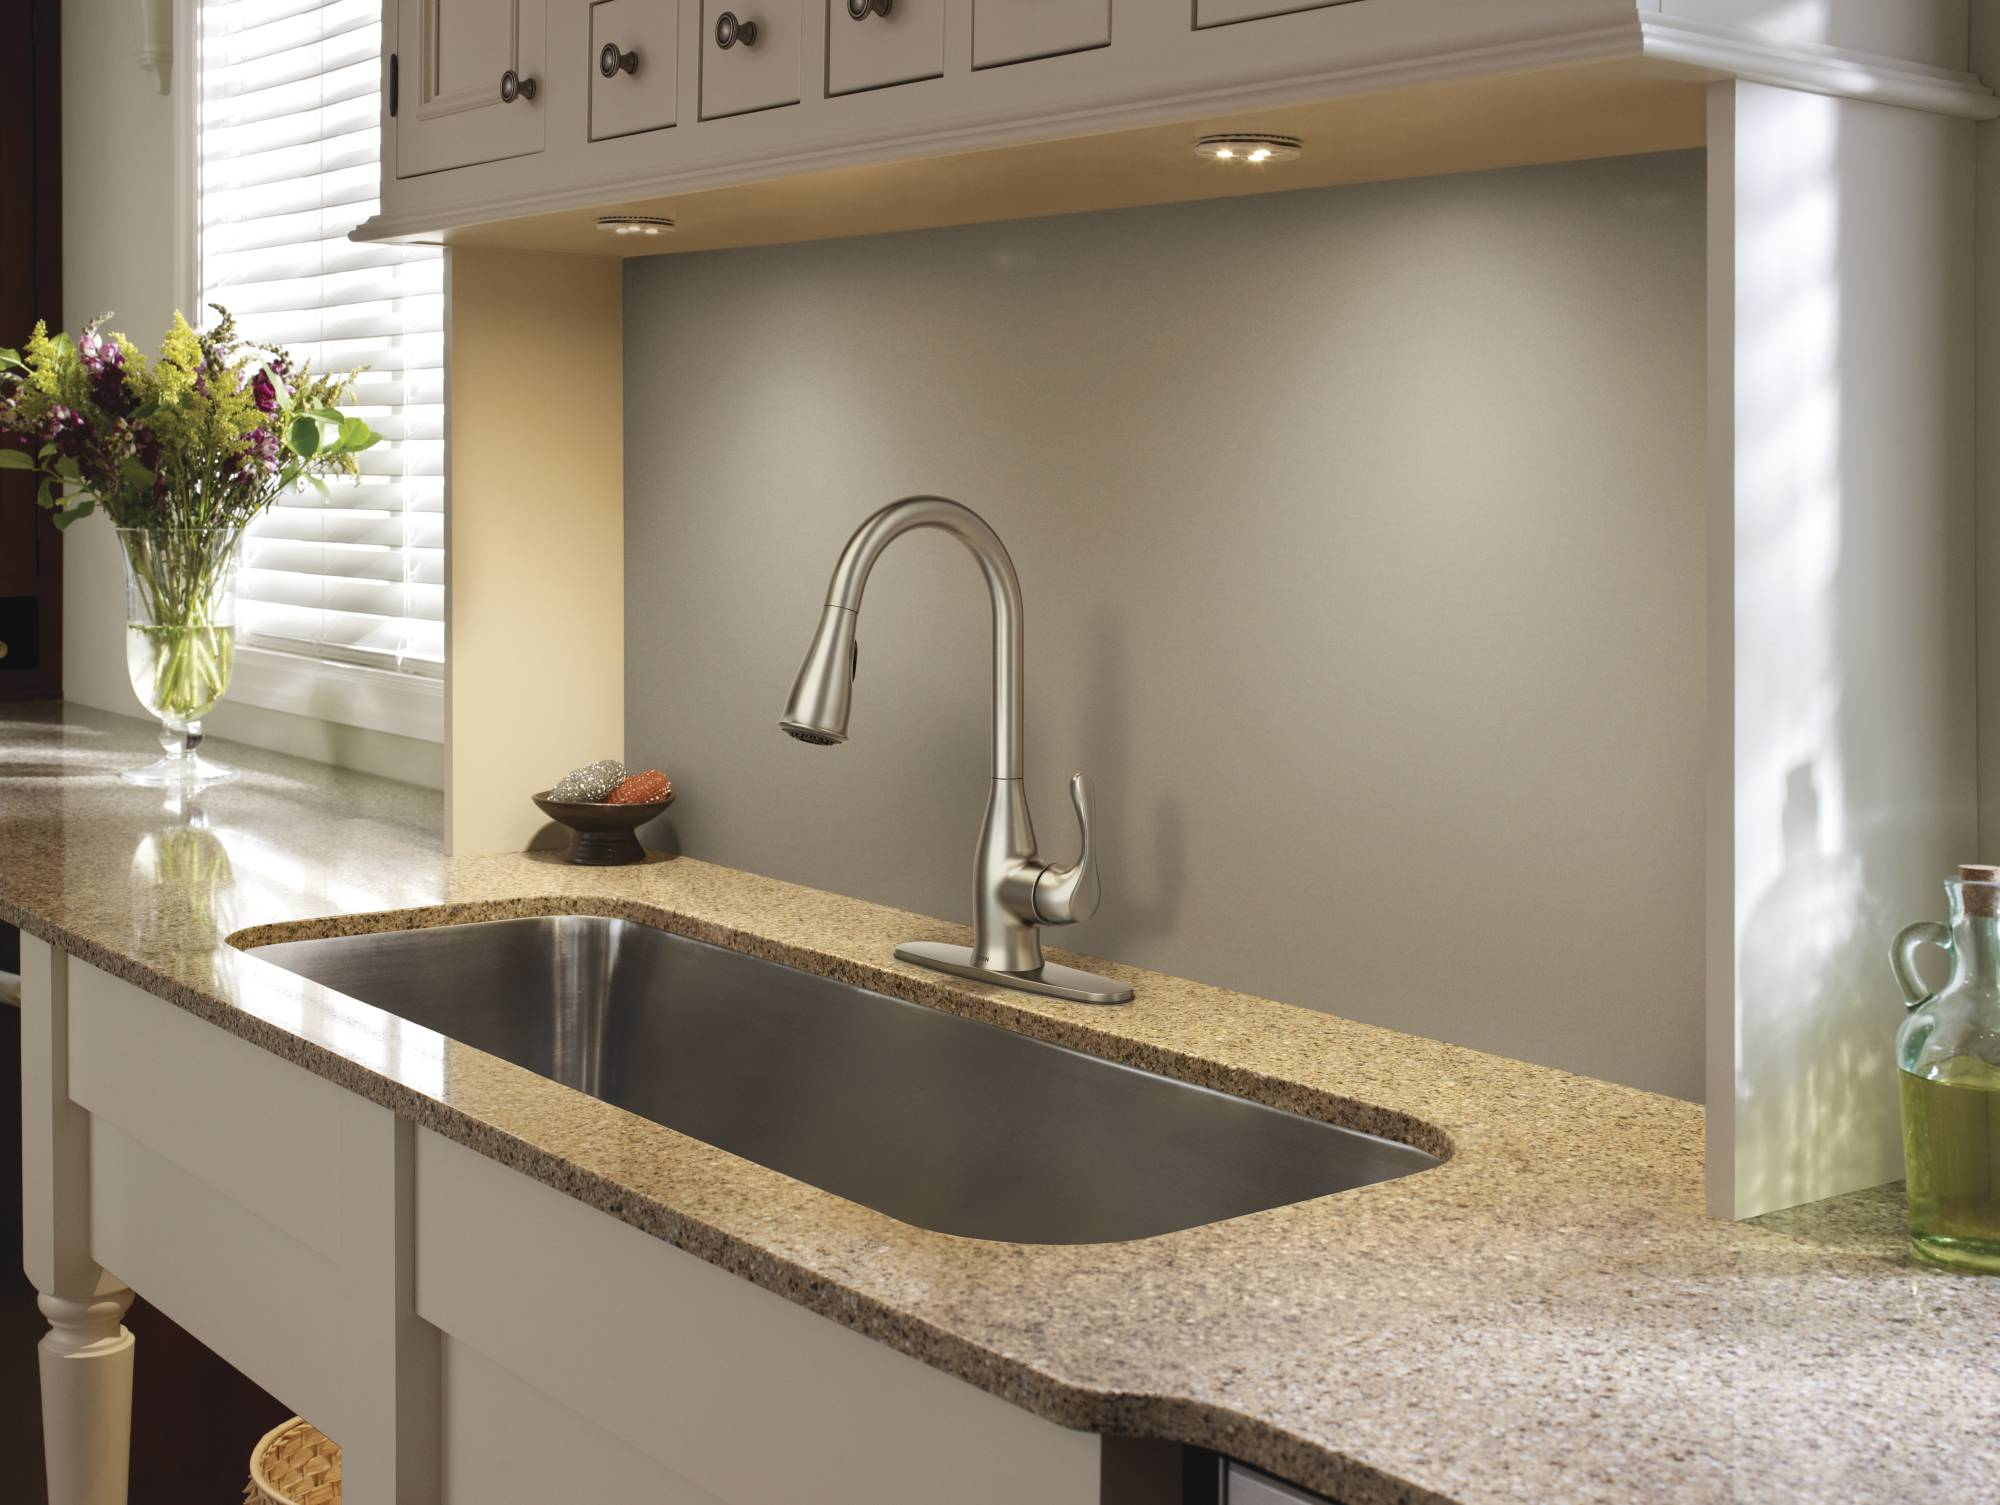 make the kitchen sink your favorite spot with new moen® kitchen